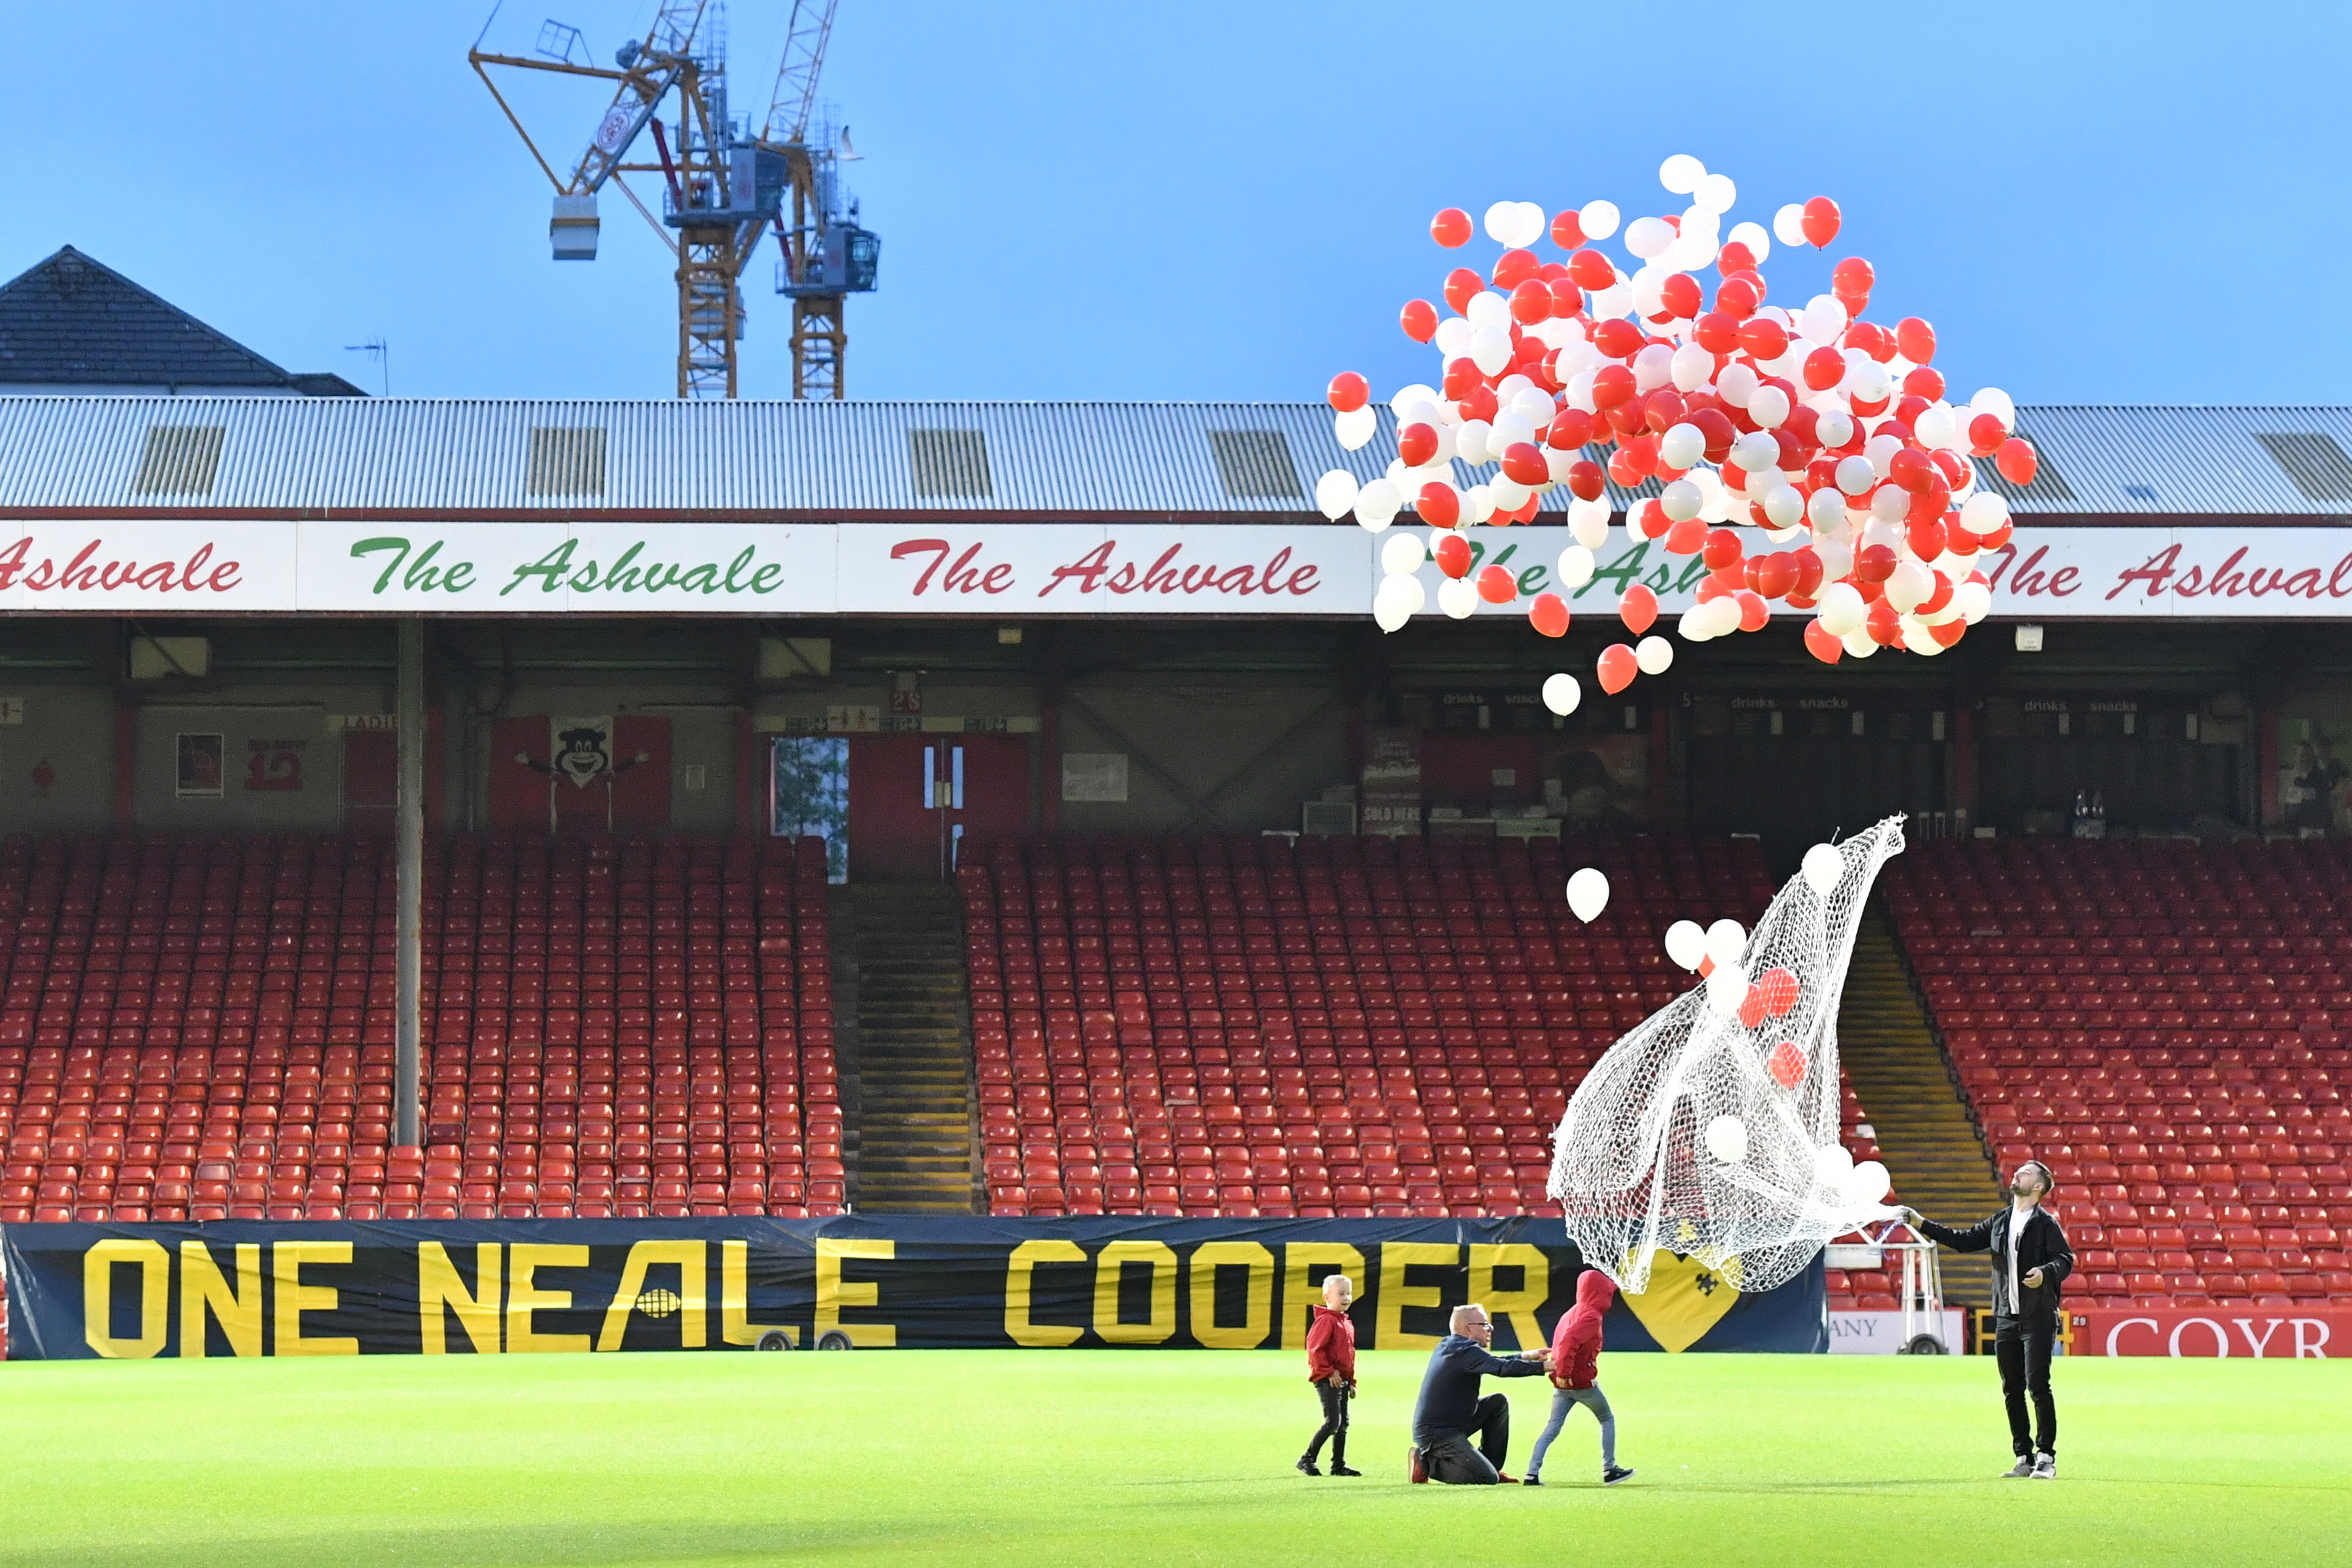 220 balloons were released in memory of Neale tonight